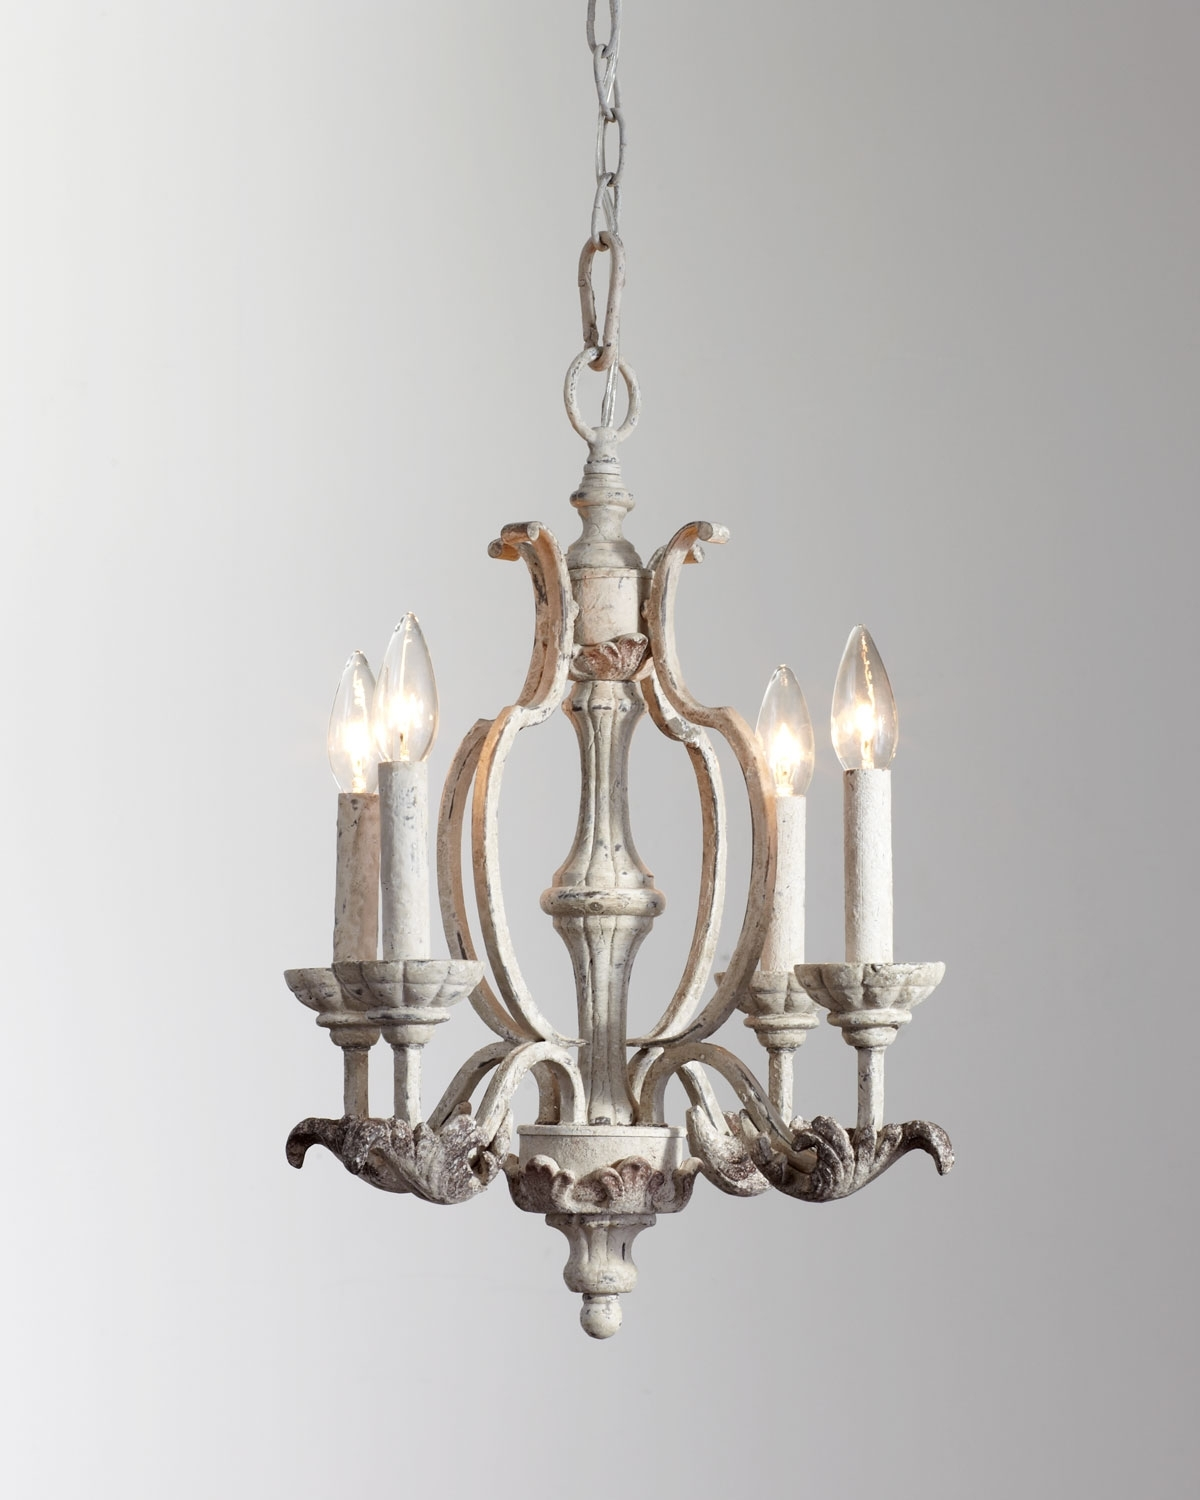 Chandeliers Design : Fabulous Silver Chandelier Modern Glass With Regard To Trendy Modern Silver Chandelier (View 8 of 20)